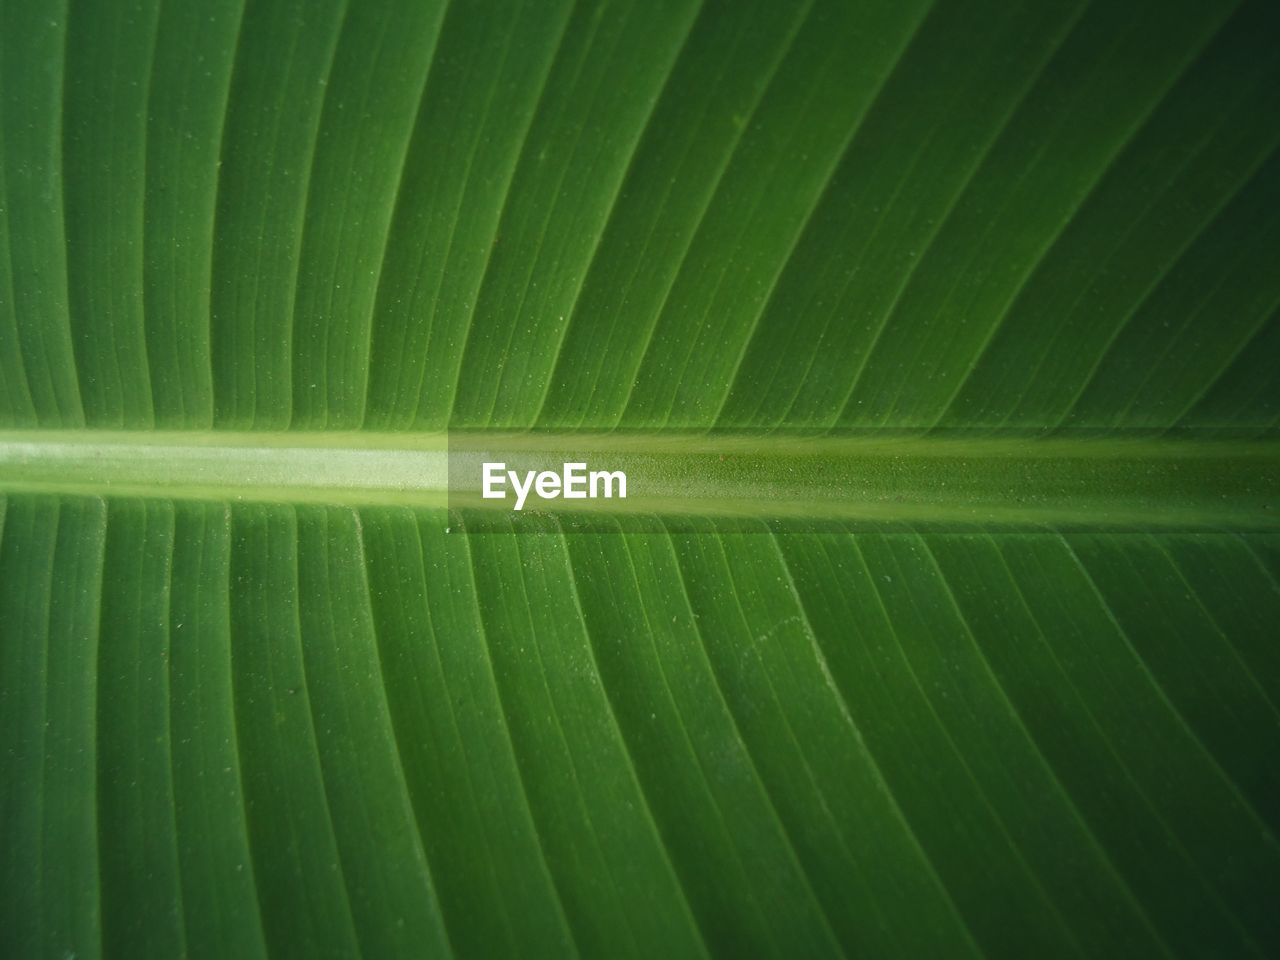 green color, full frame, backgrounds, close-up, leaf, no people, pattern, natural pattern, plant part, nature, beauty in nature, textured, banana leaf, growth, plant, freshness, leaf vein, leaves, repetition, outdoors, palm leaf